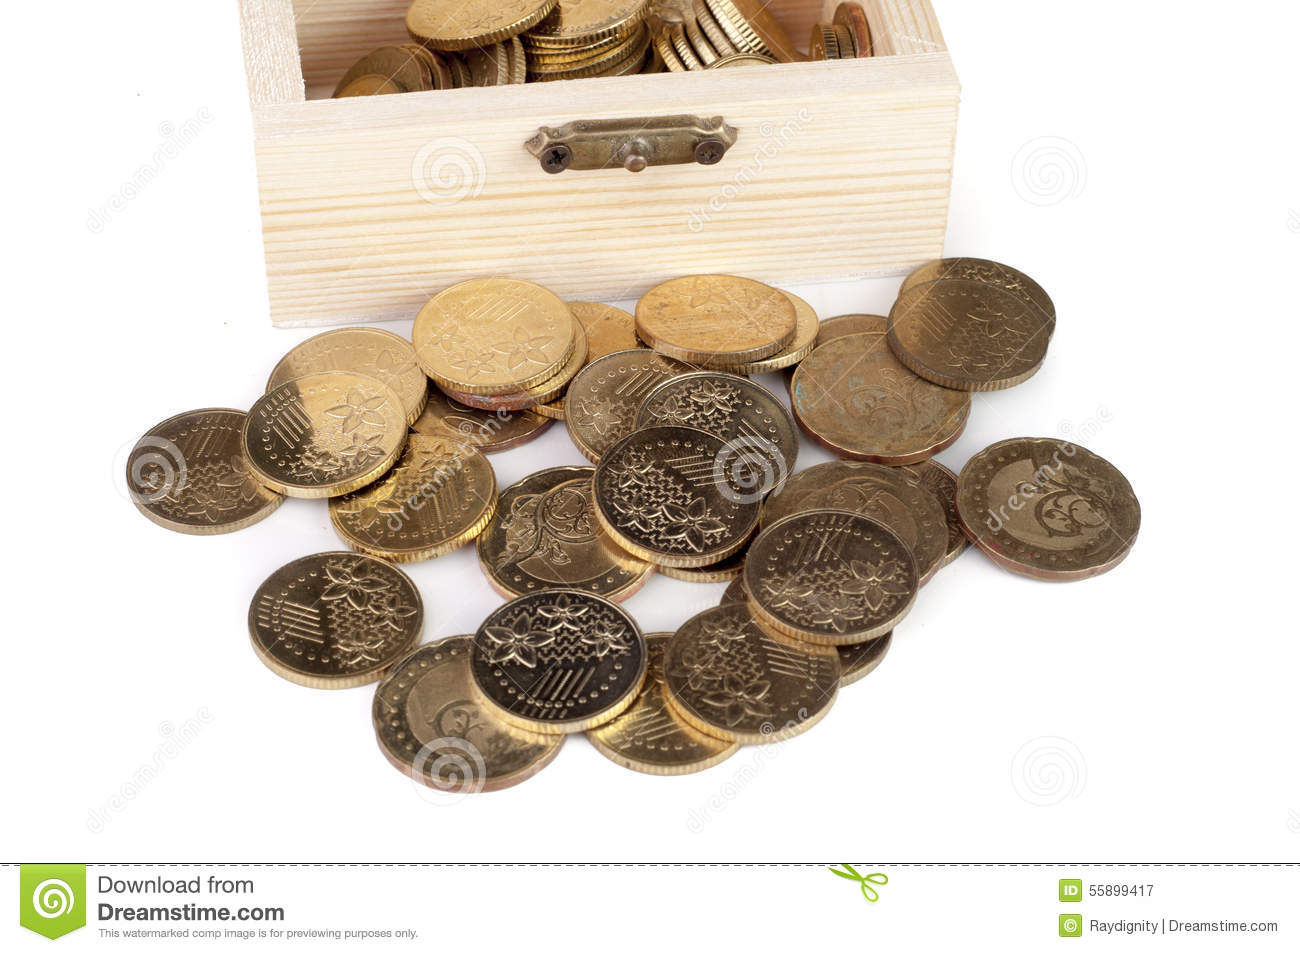 Download Coin in wooden box stock image. Image of coins, bank - 55899417